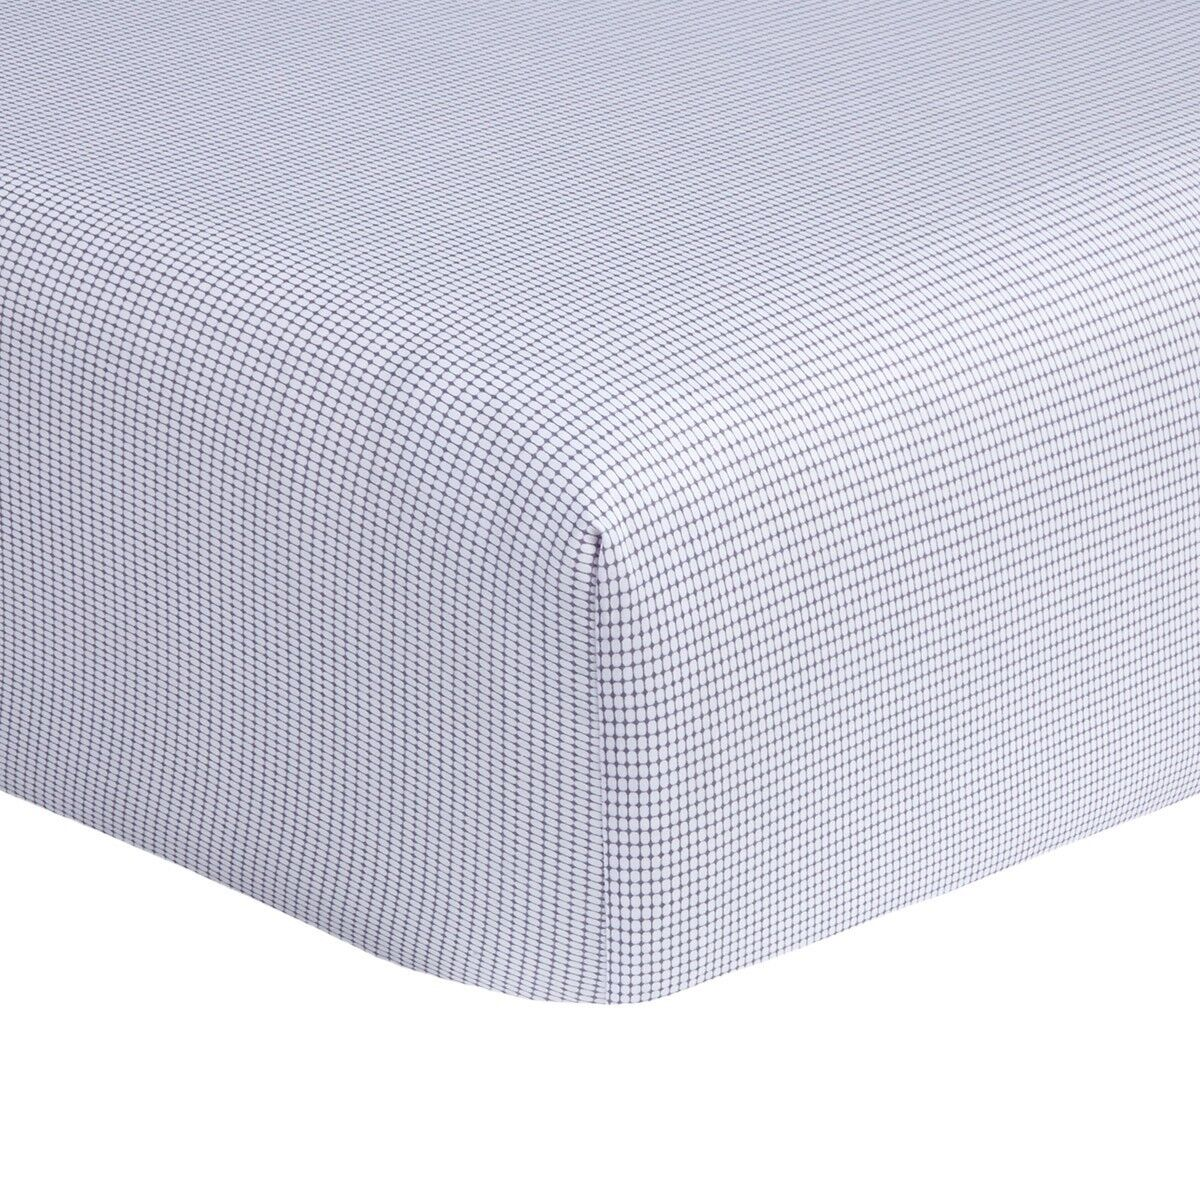 Hugo Boss Volumn Queen Fitted Sheet